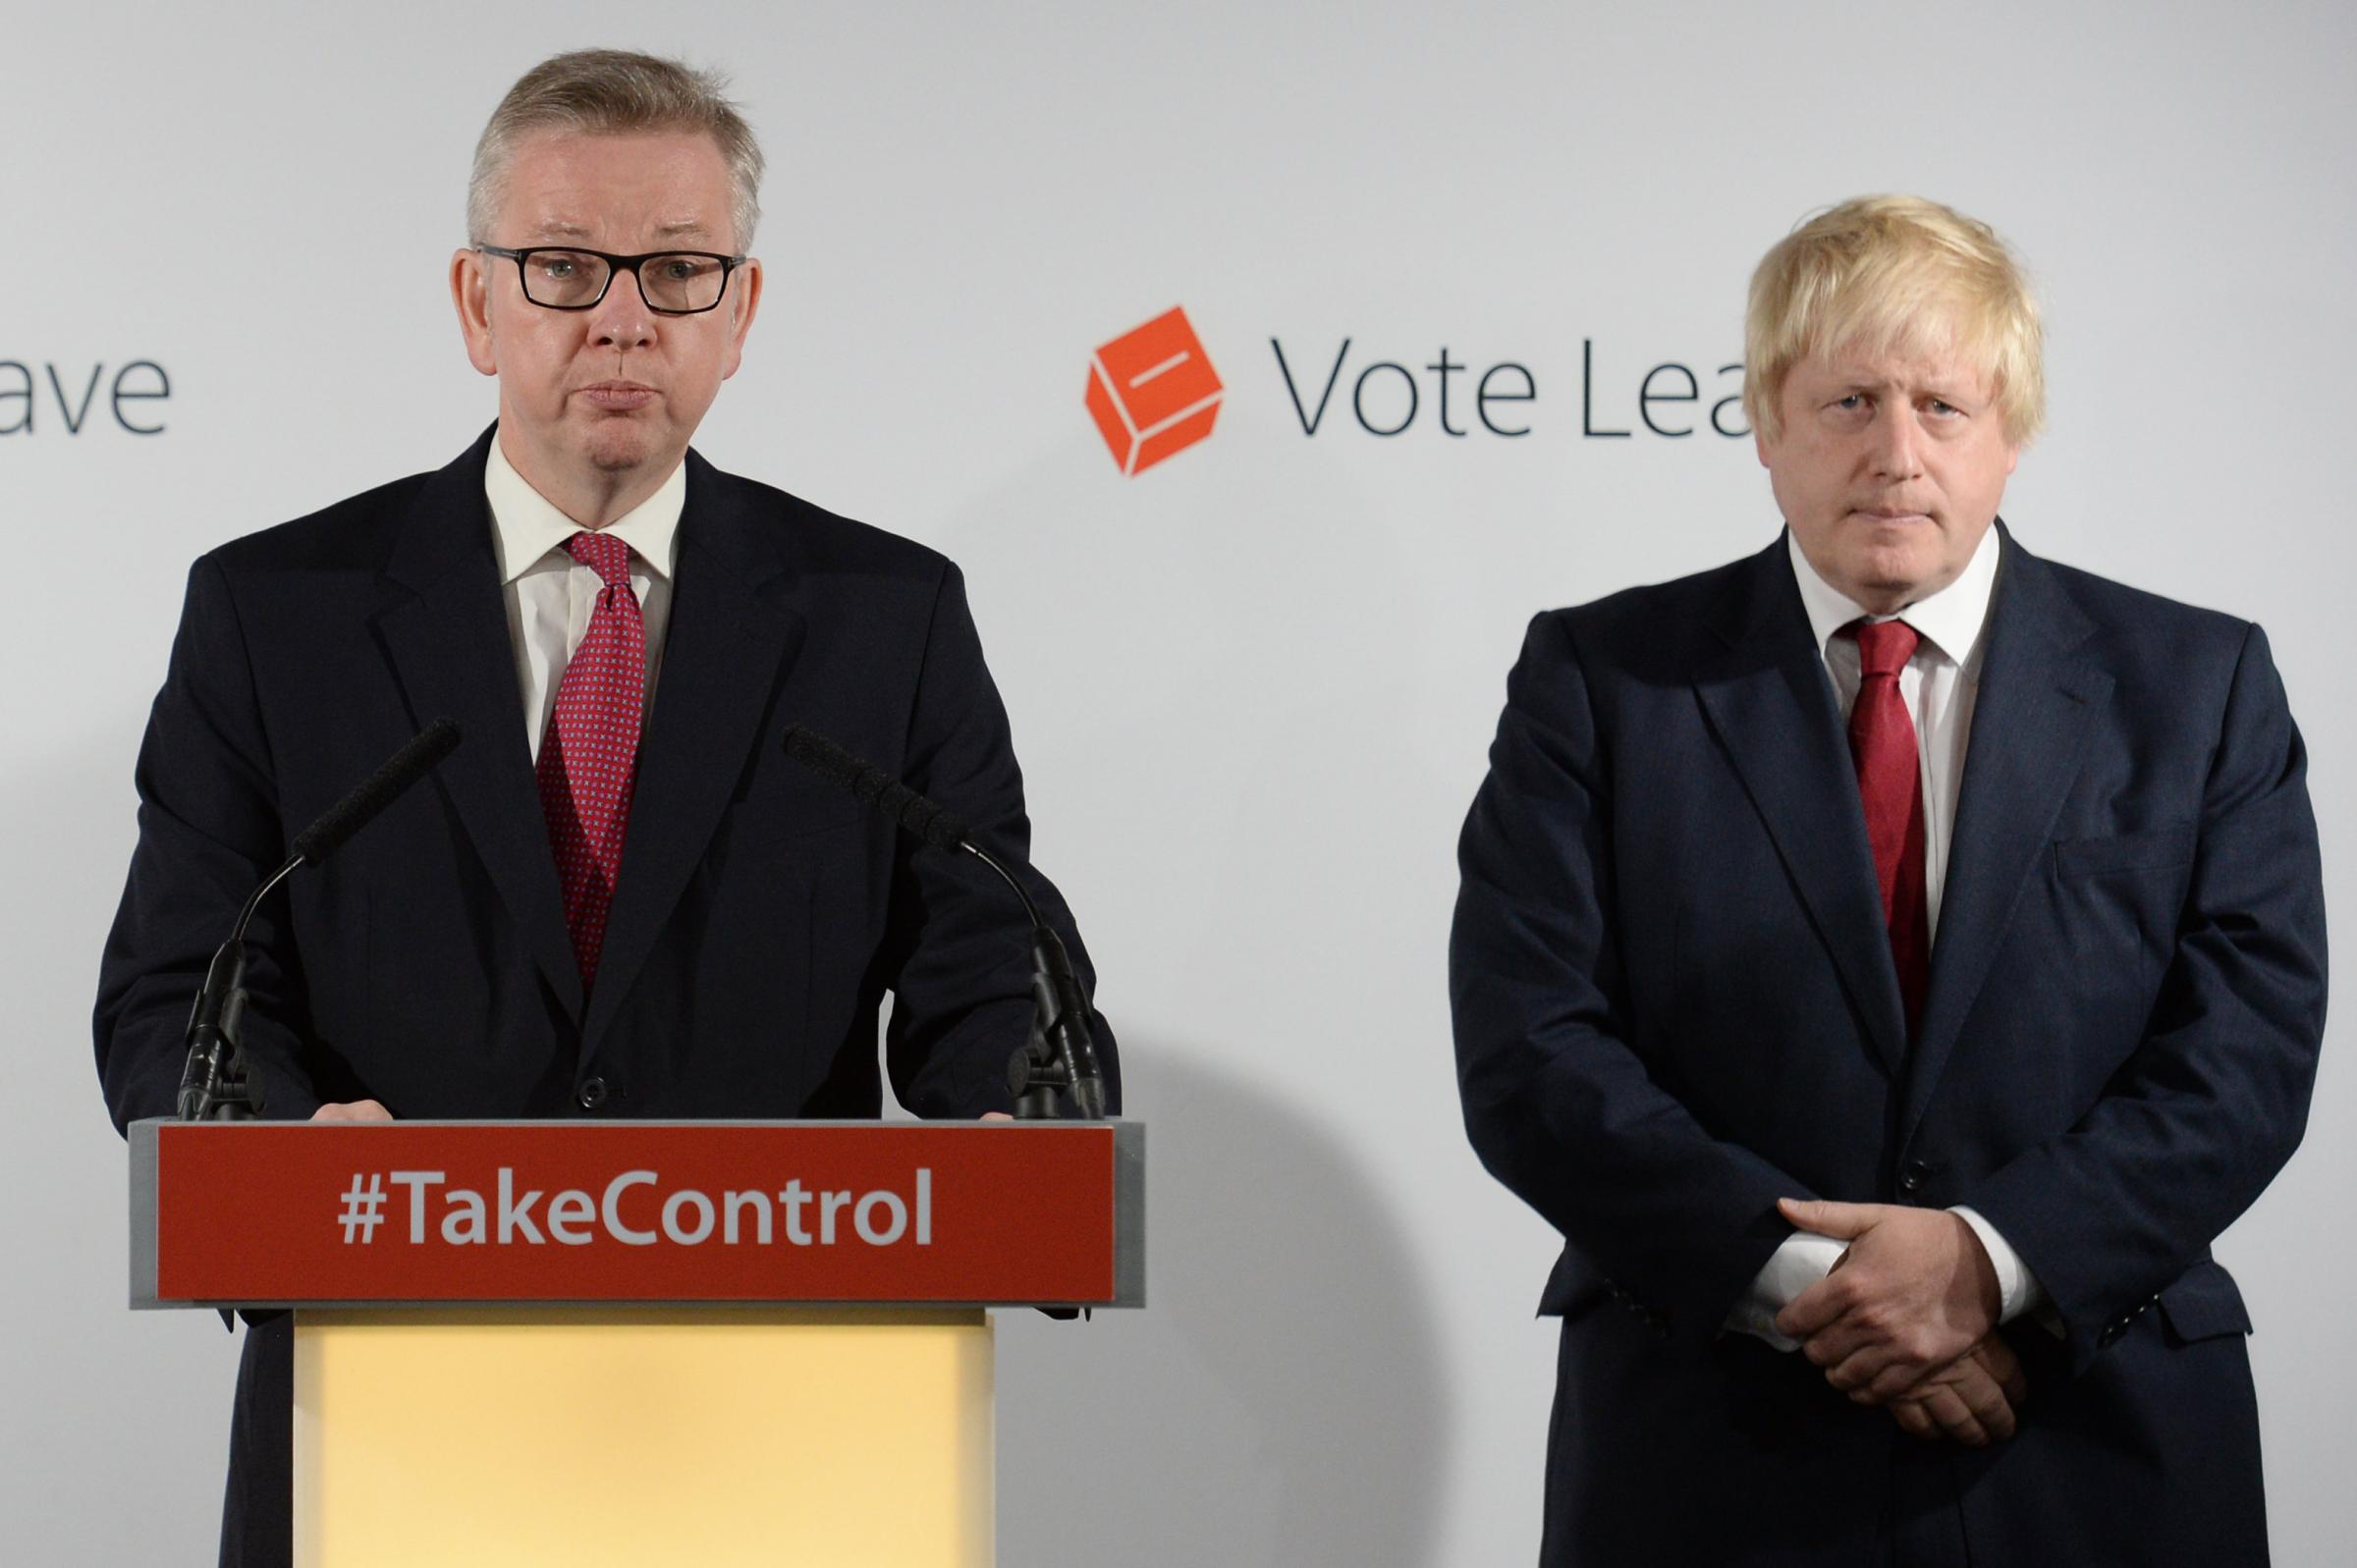 Michael Gove MP (L) speaks during a press conference as Boris Johnson looks on Picture: Stefan Rousseau - WPA Pool/Getty Images